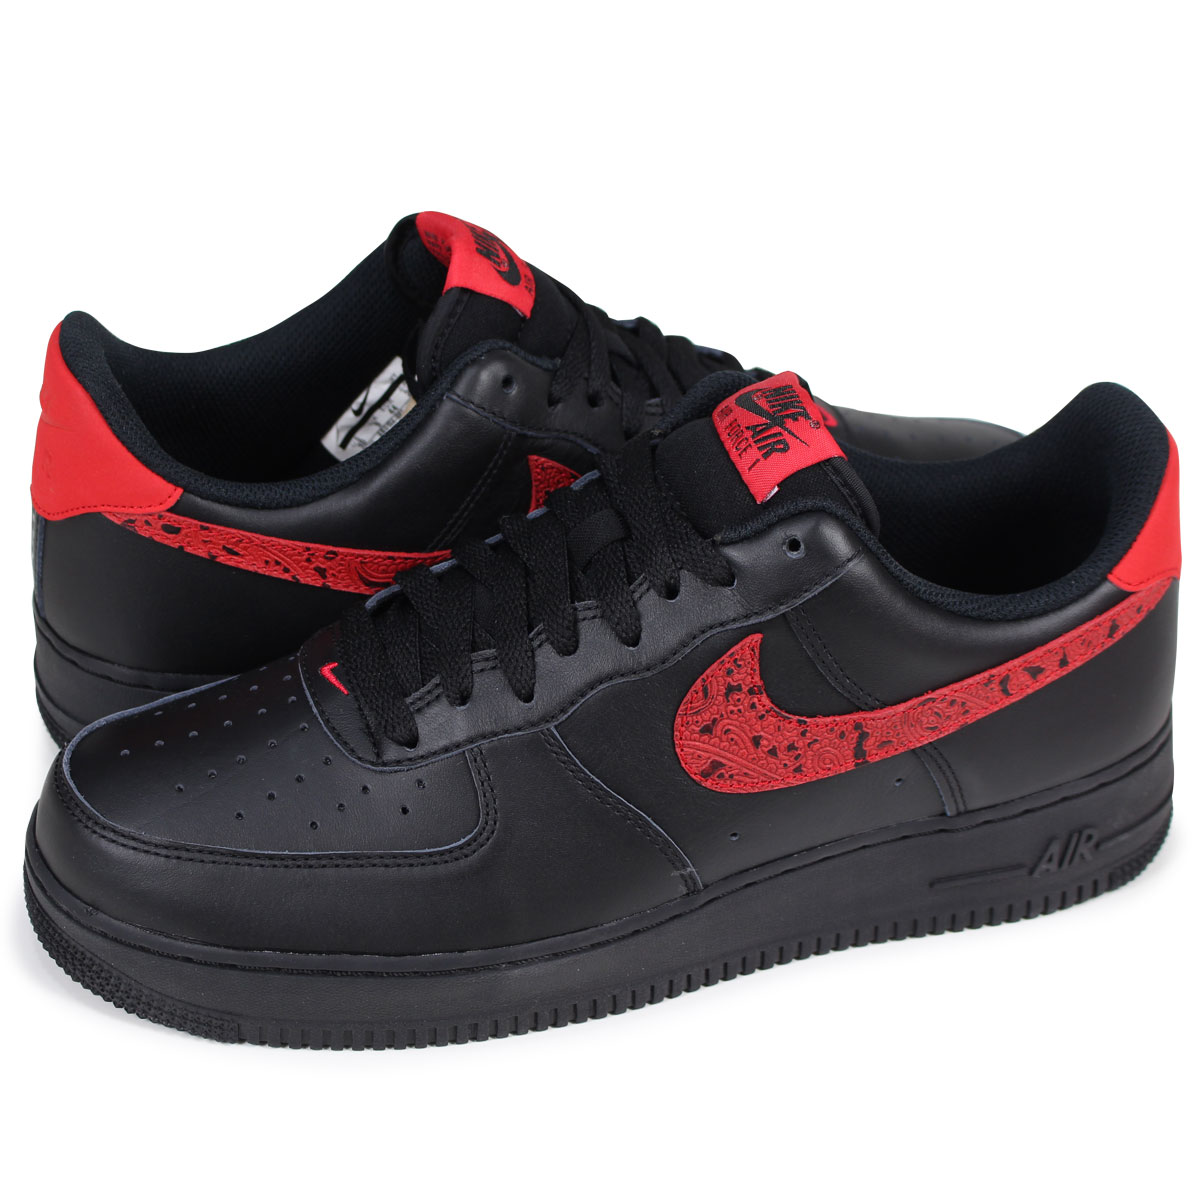 8e08483b7e0ecb NIKE AIR FORCE 1 07 F Nike air force 1 sneakers men AO3154-001 black  2 17  Shinnyu load   182